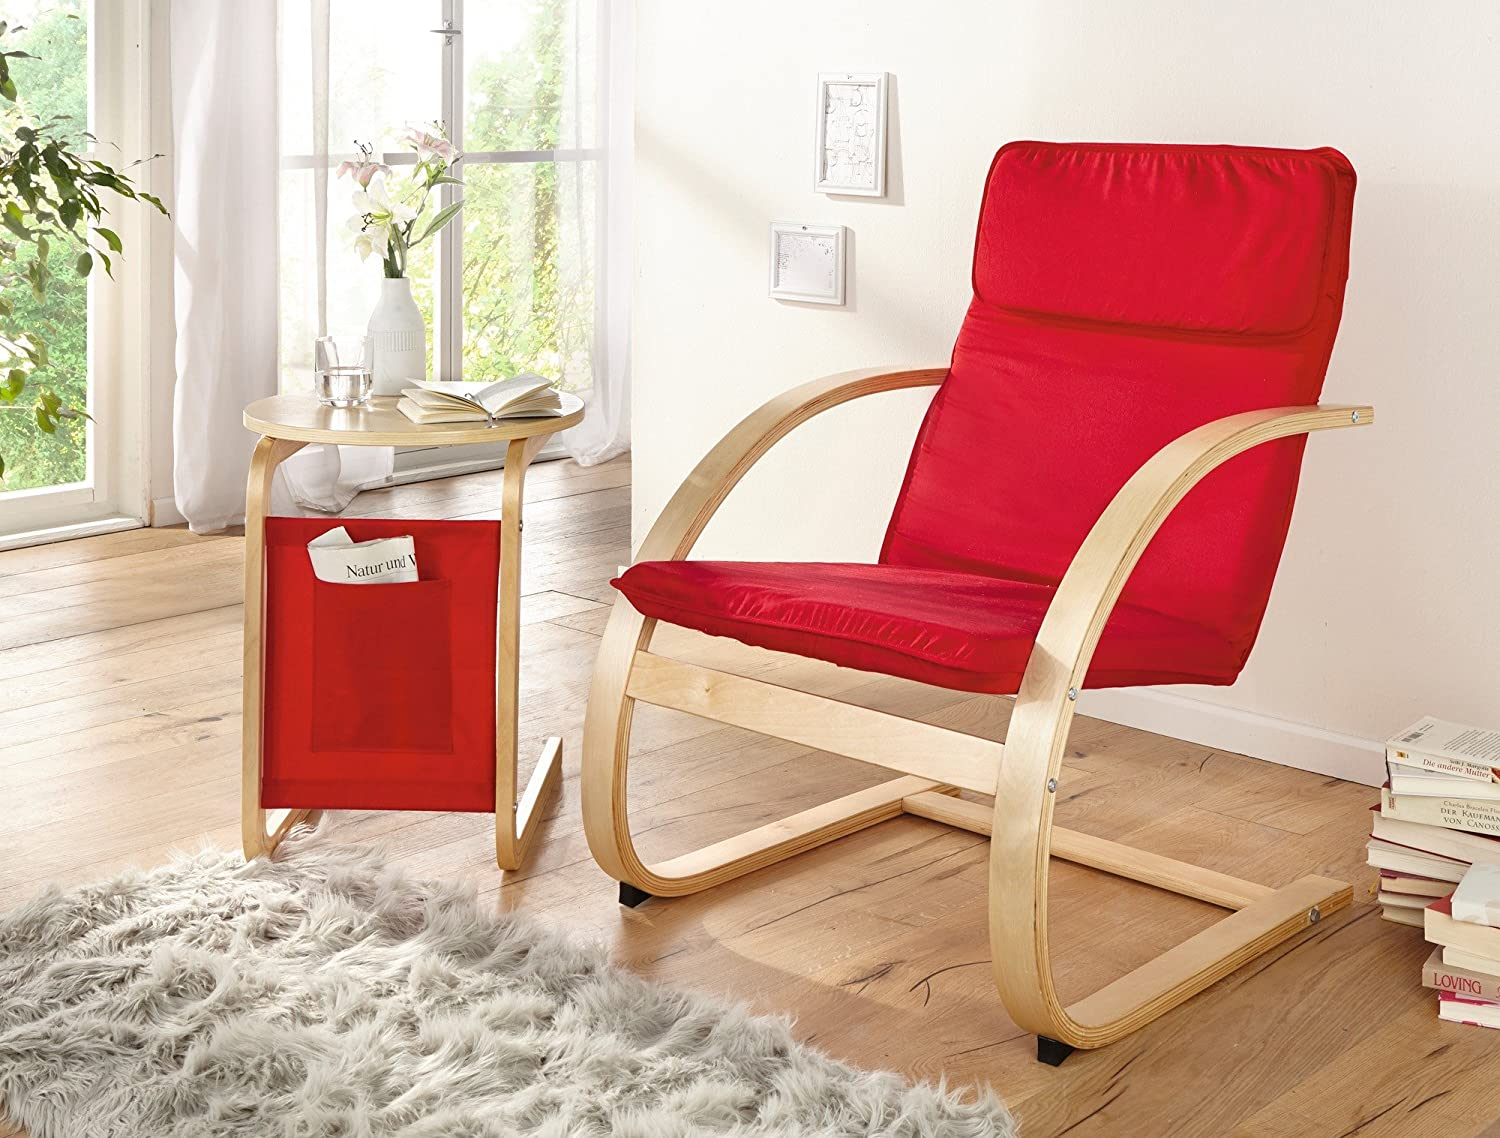 Relax Silla Red